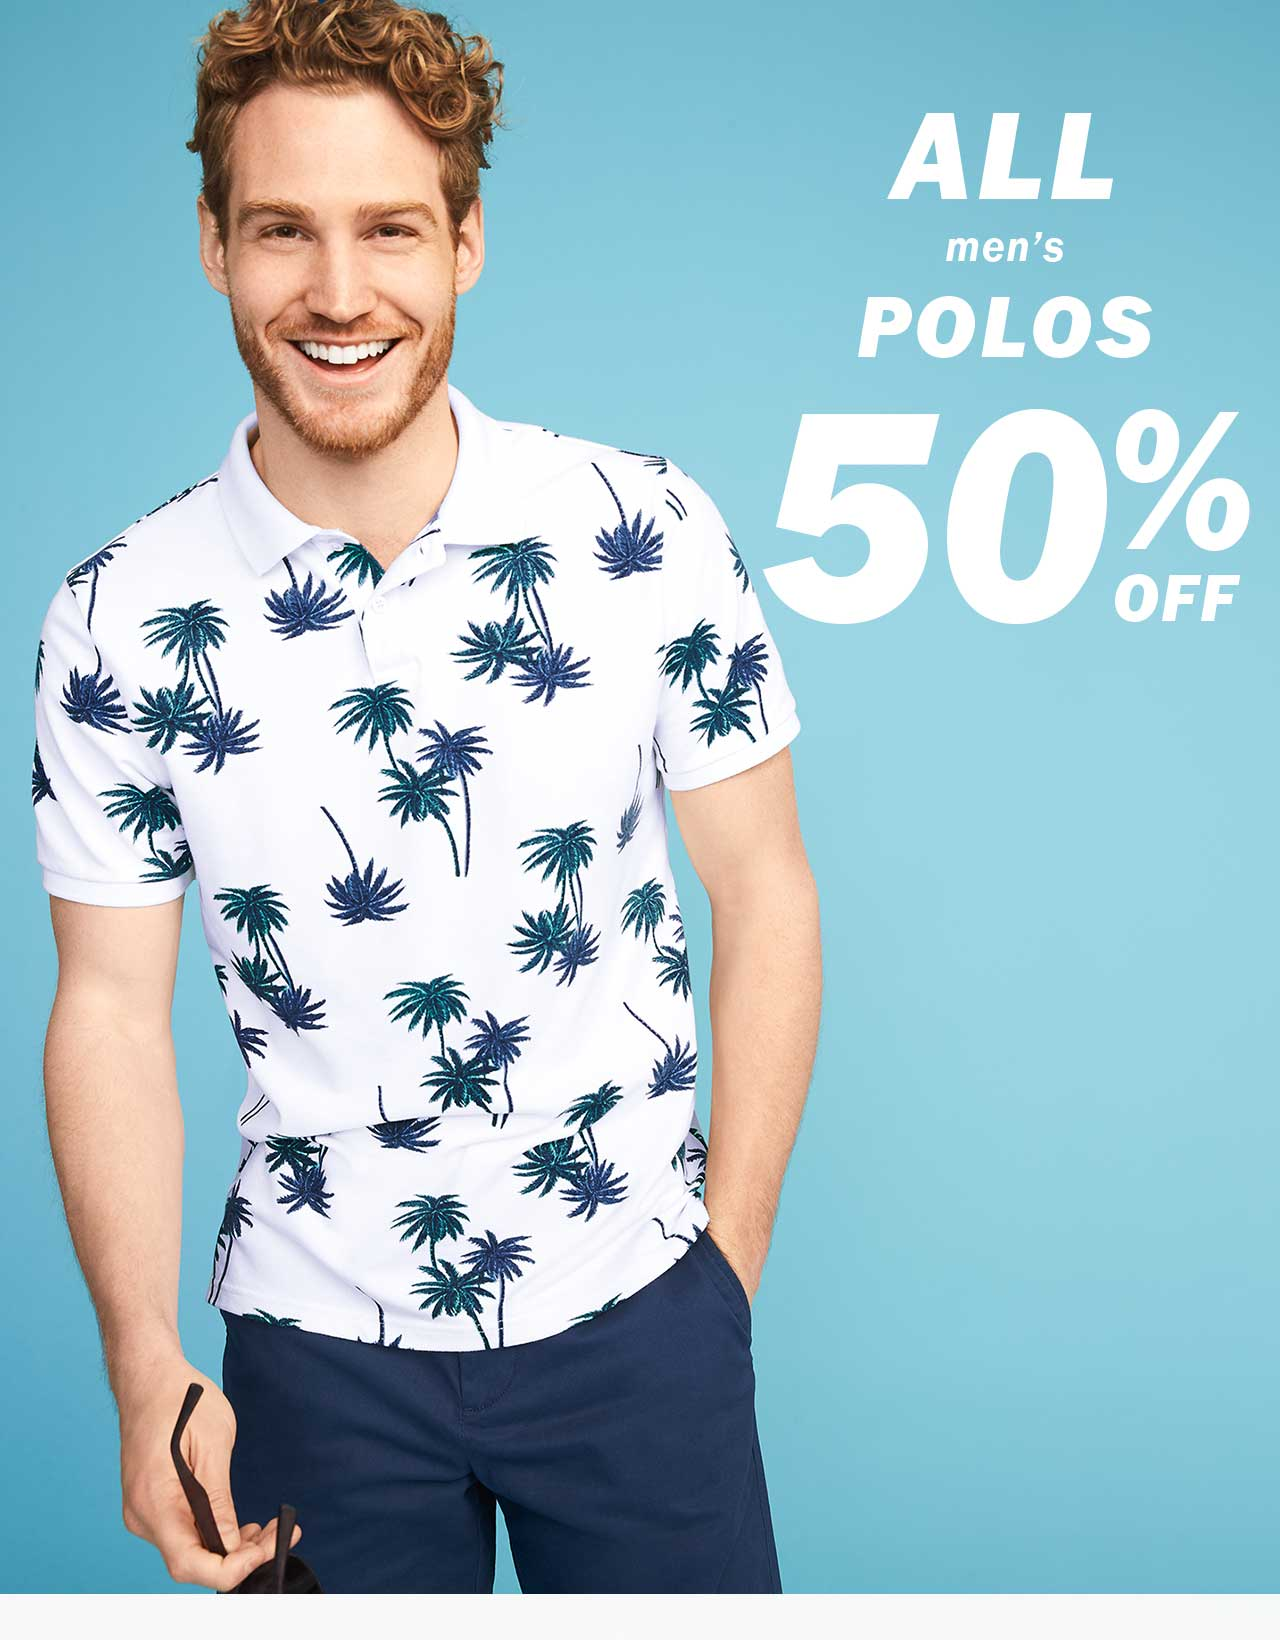 ALL men's POLOS 50% OFF